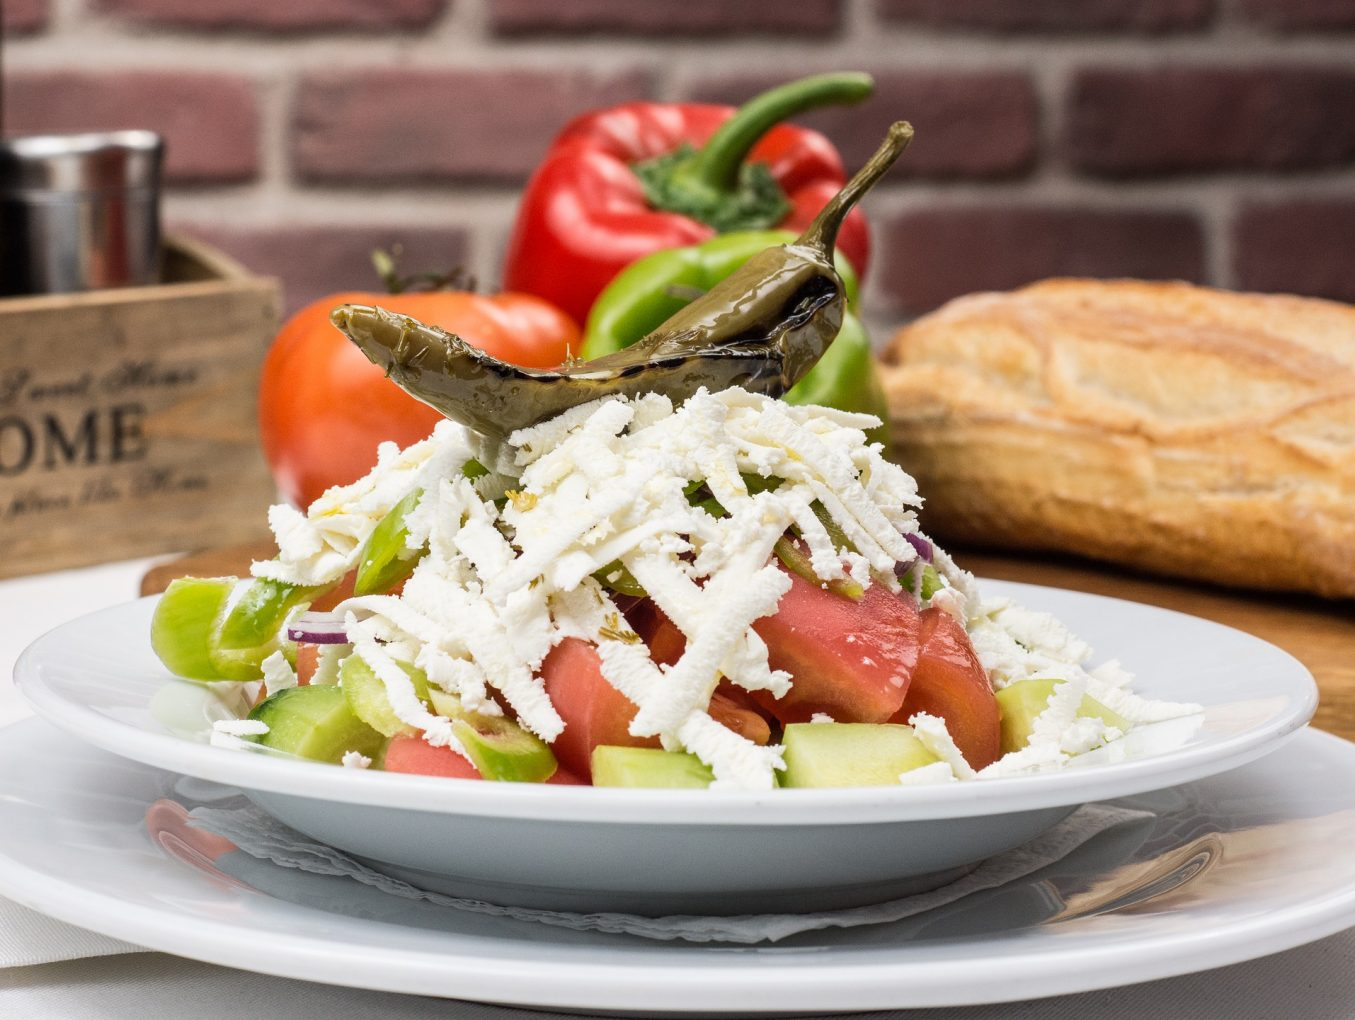 Shopska Salad - One of the Favorite Salads of the Foreigners